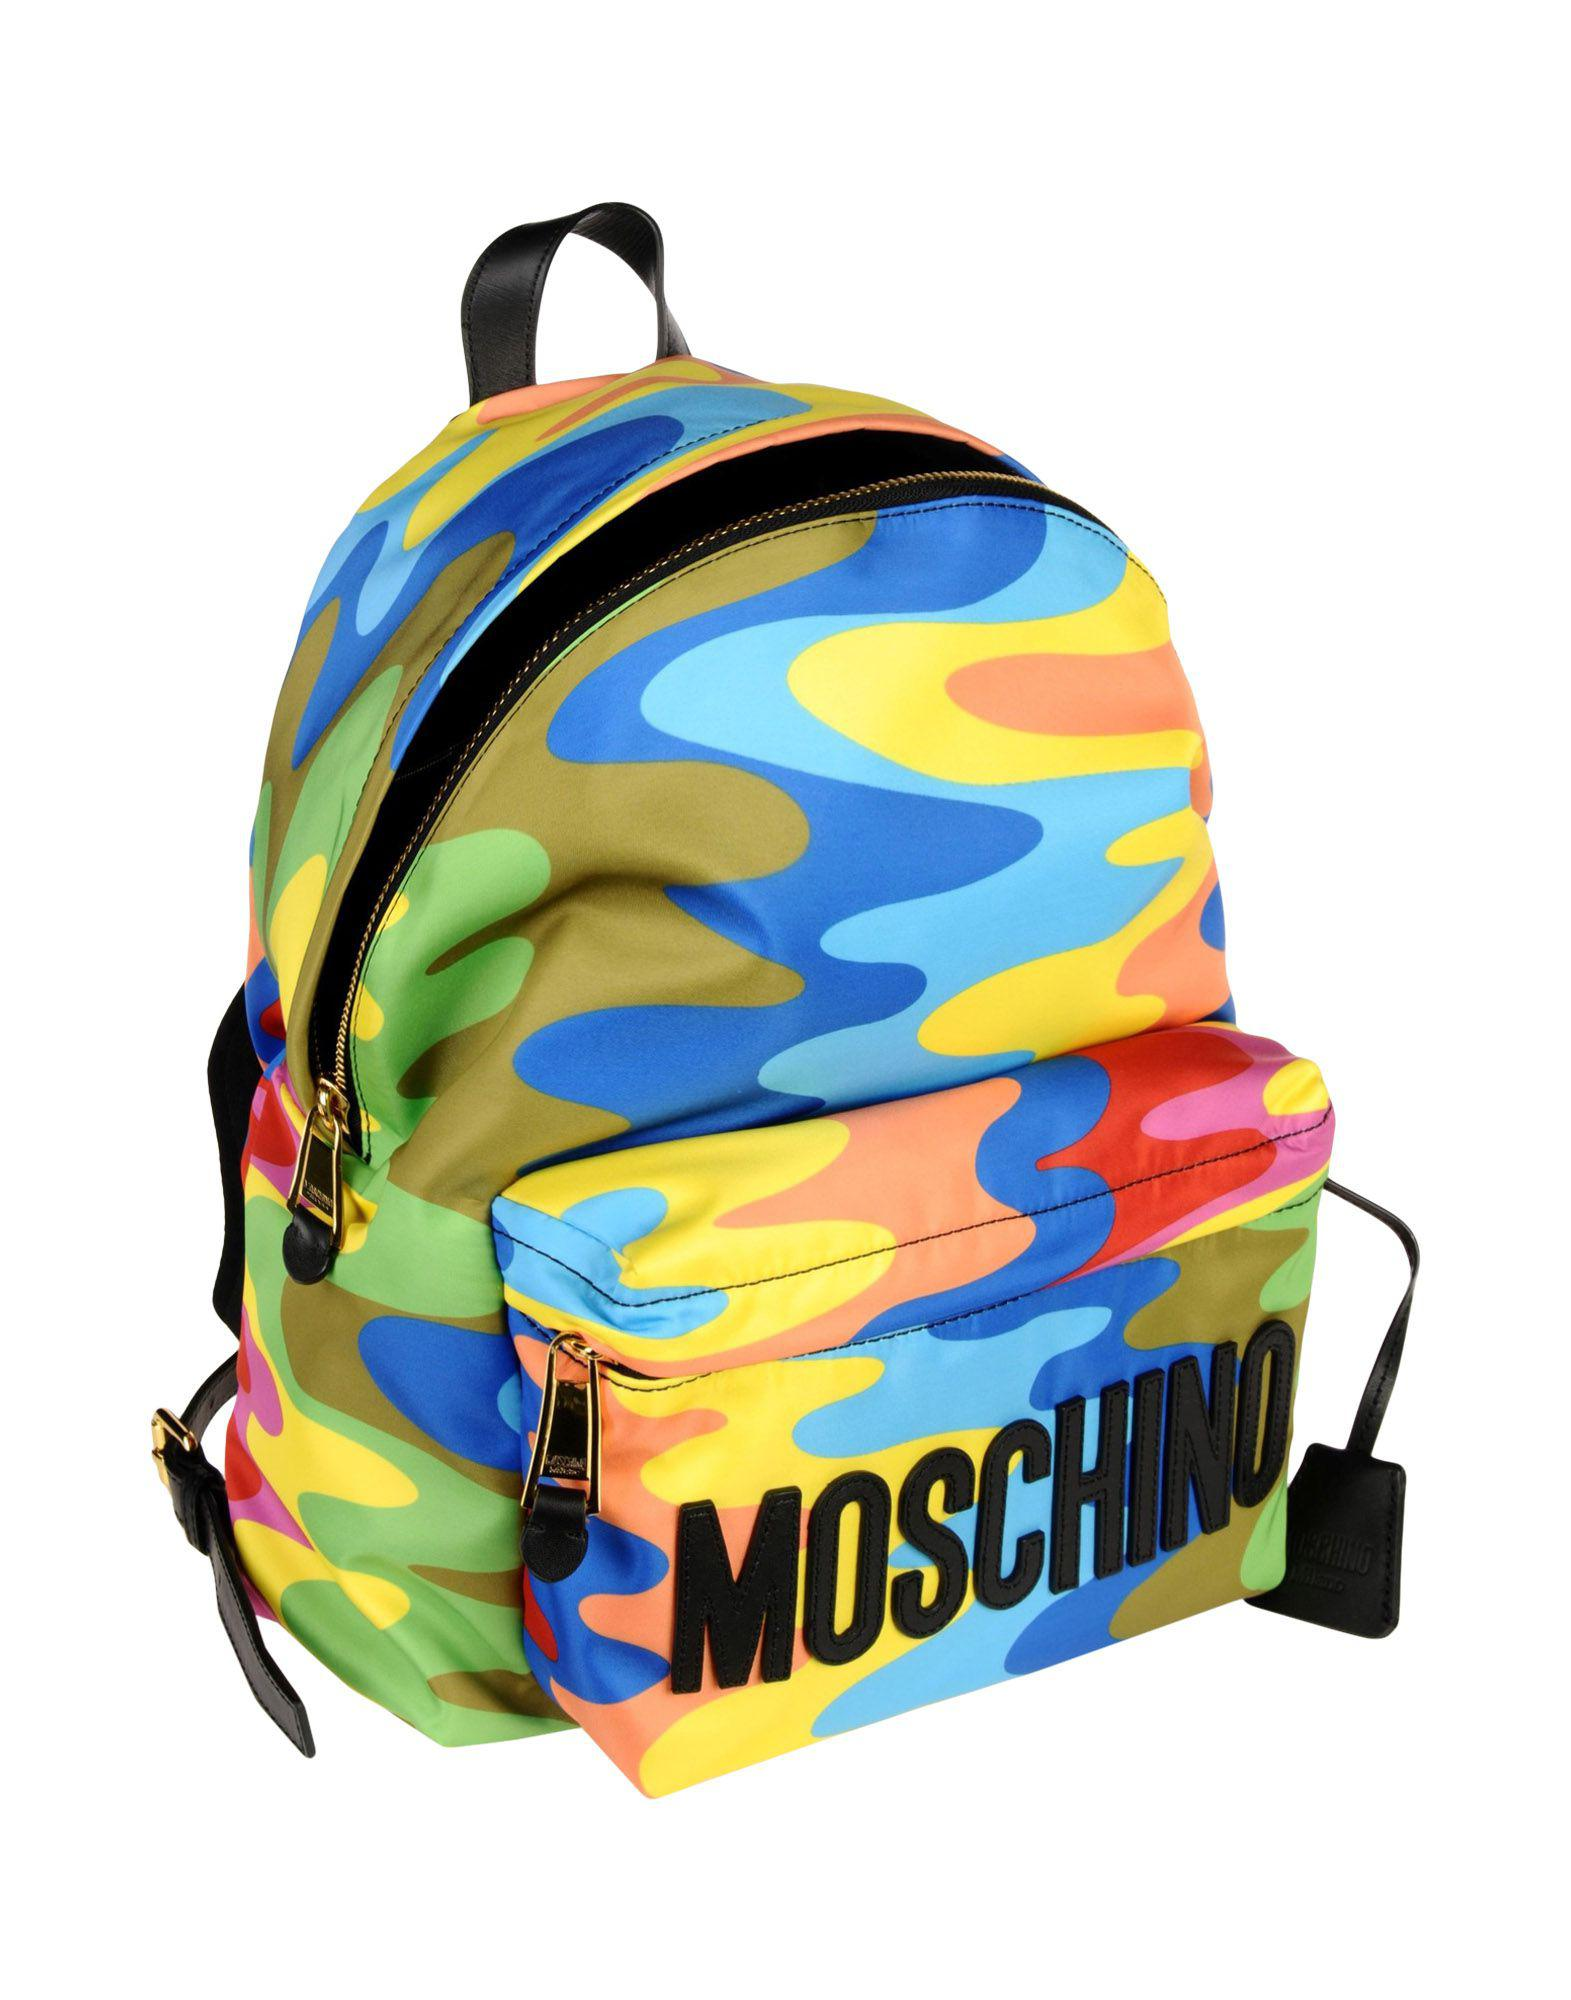 Moschino Satin Backpacks & Bum Bags in Azure (Blue)